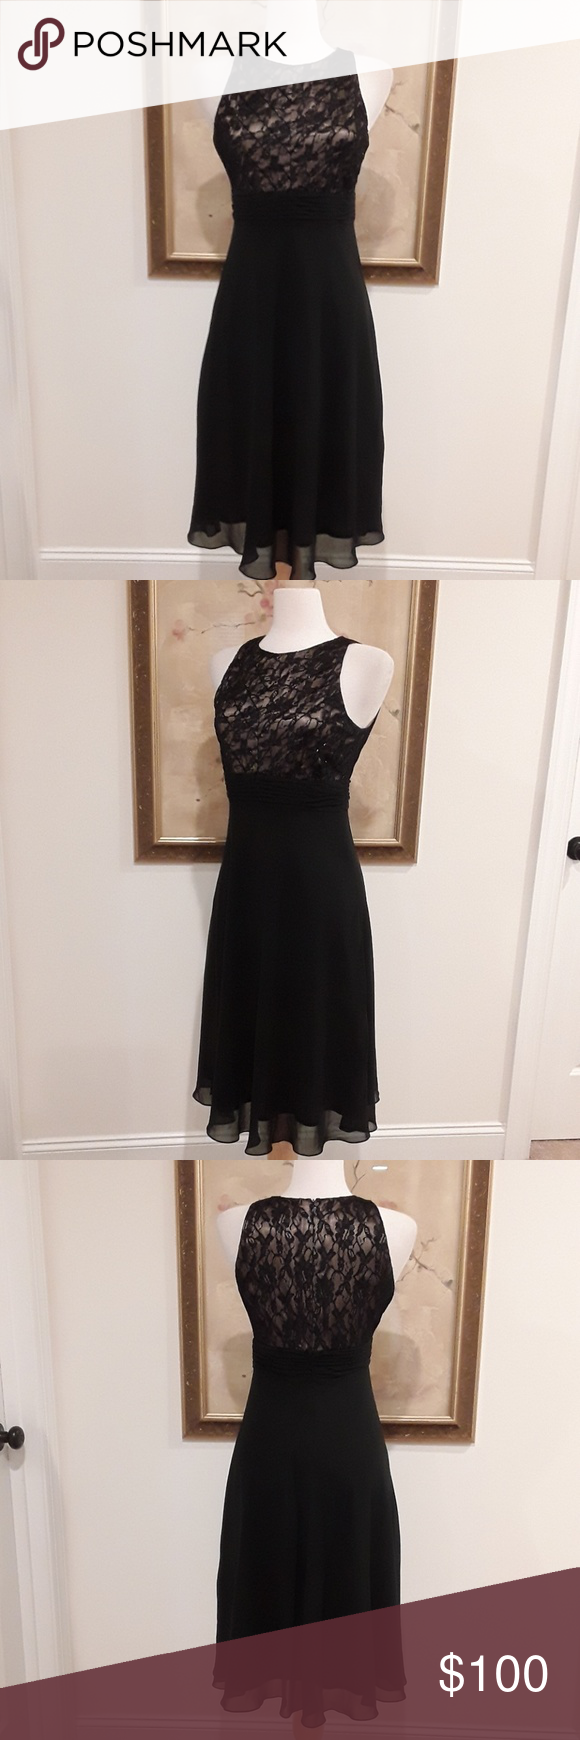 Chiffon black flowy dress colour black bodice and flow